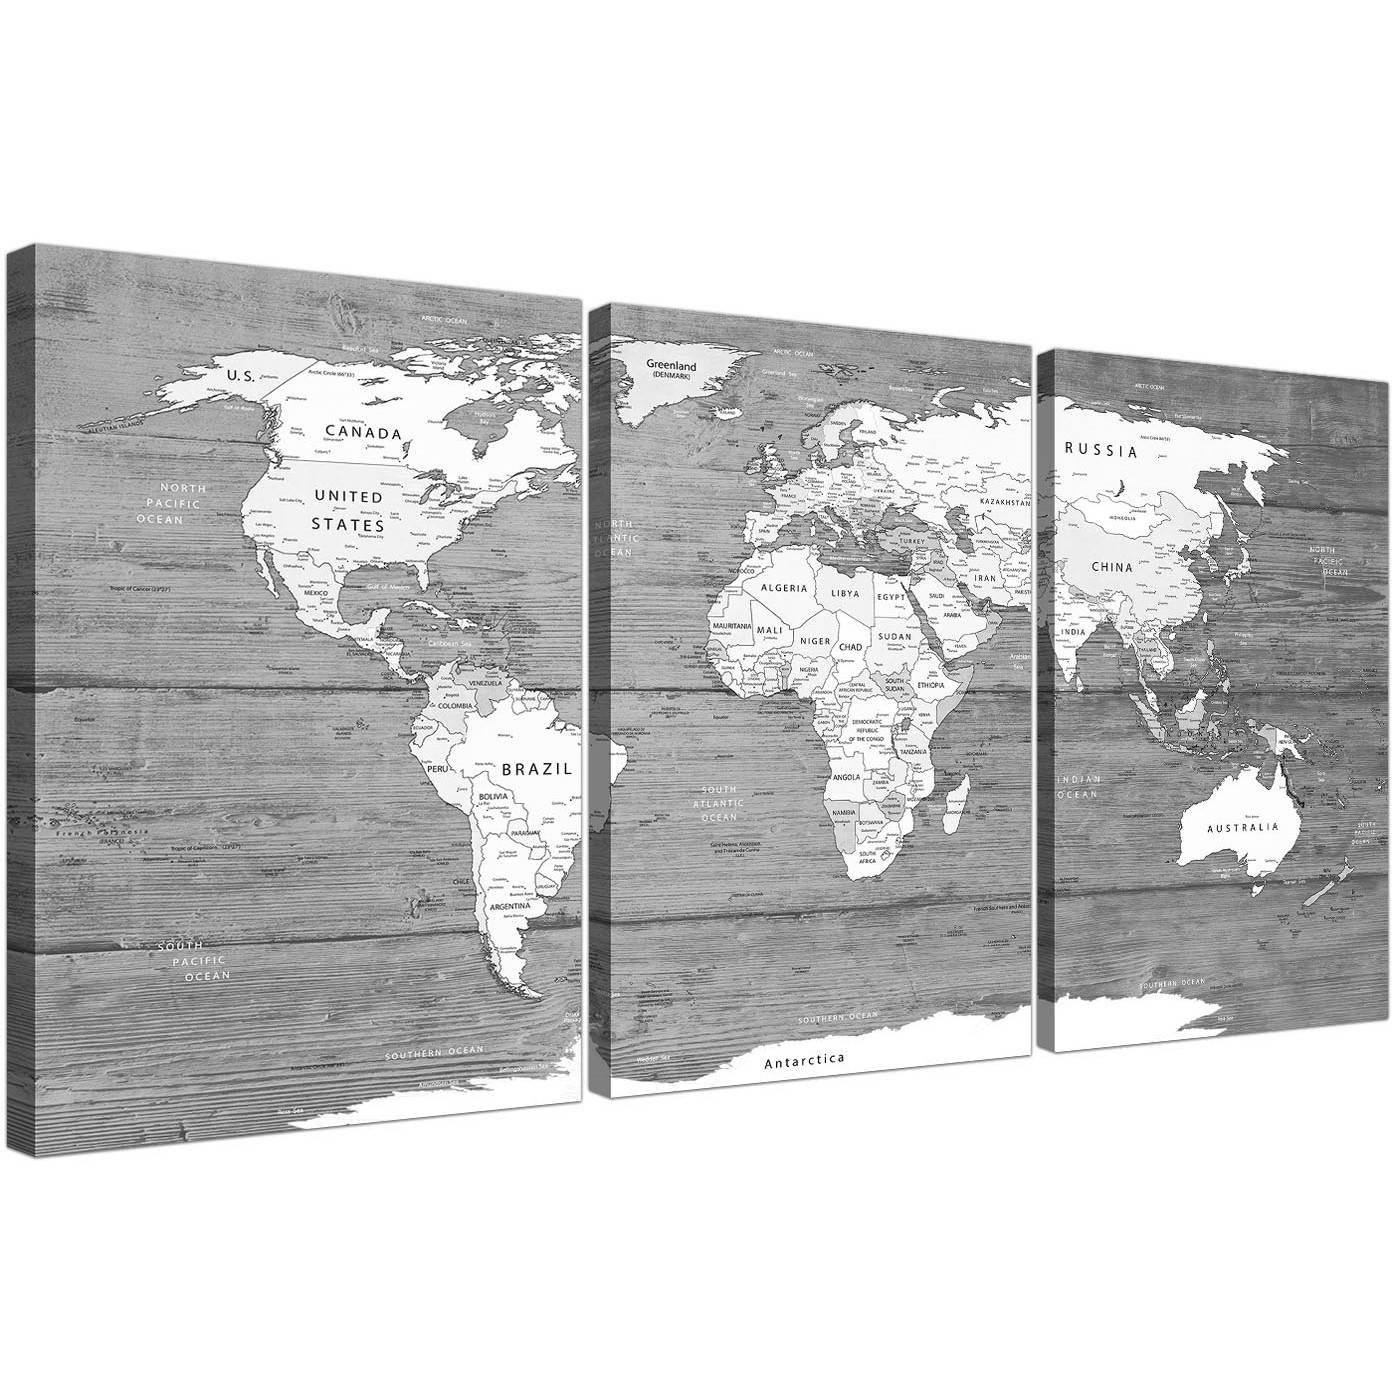 Large Black White Map Of World Atlas – Canvas Wall Art Print Inside Most Recent Atlas Wall Art (View 7 of 20)